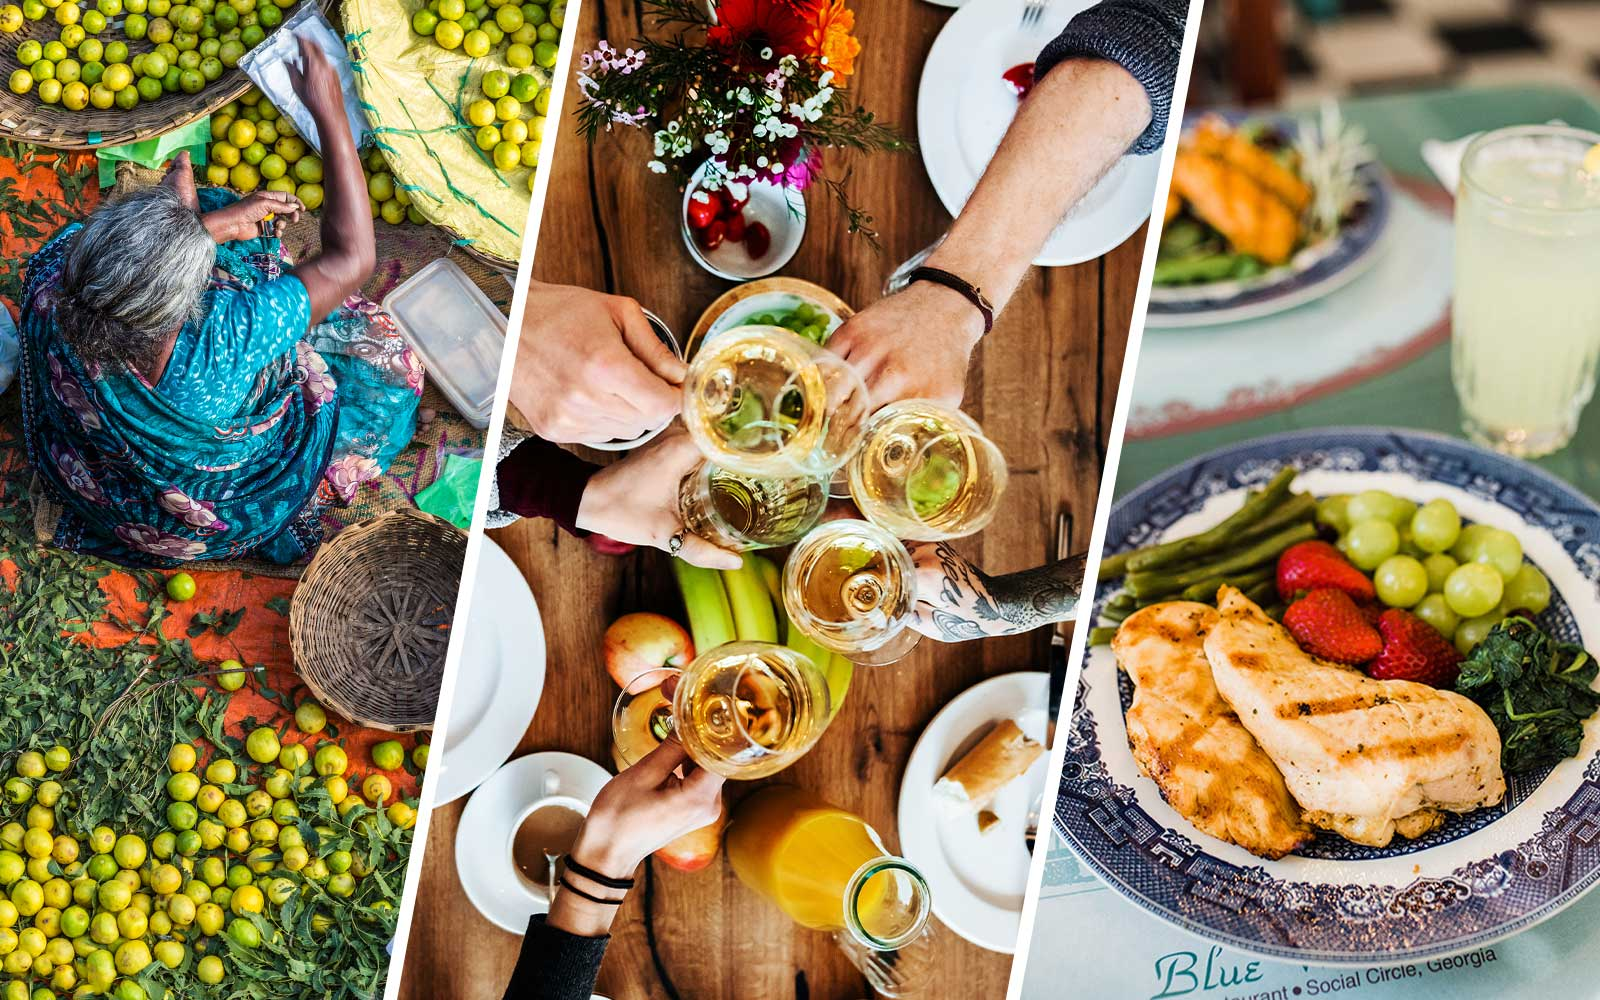 35 Culinary Journeys Every Foodie Should Add to Their Bucket List